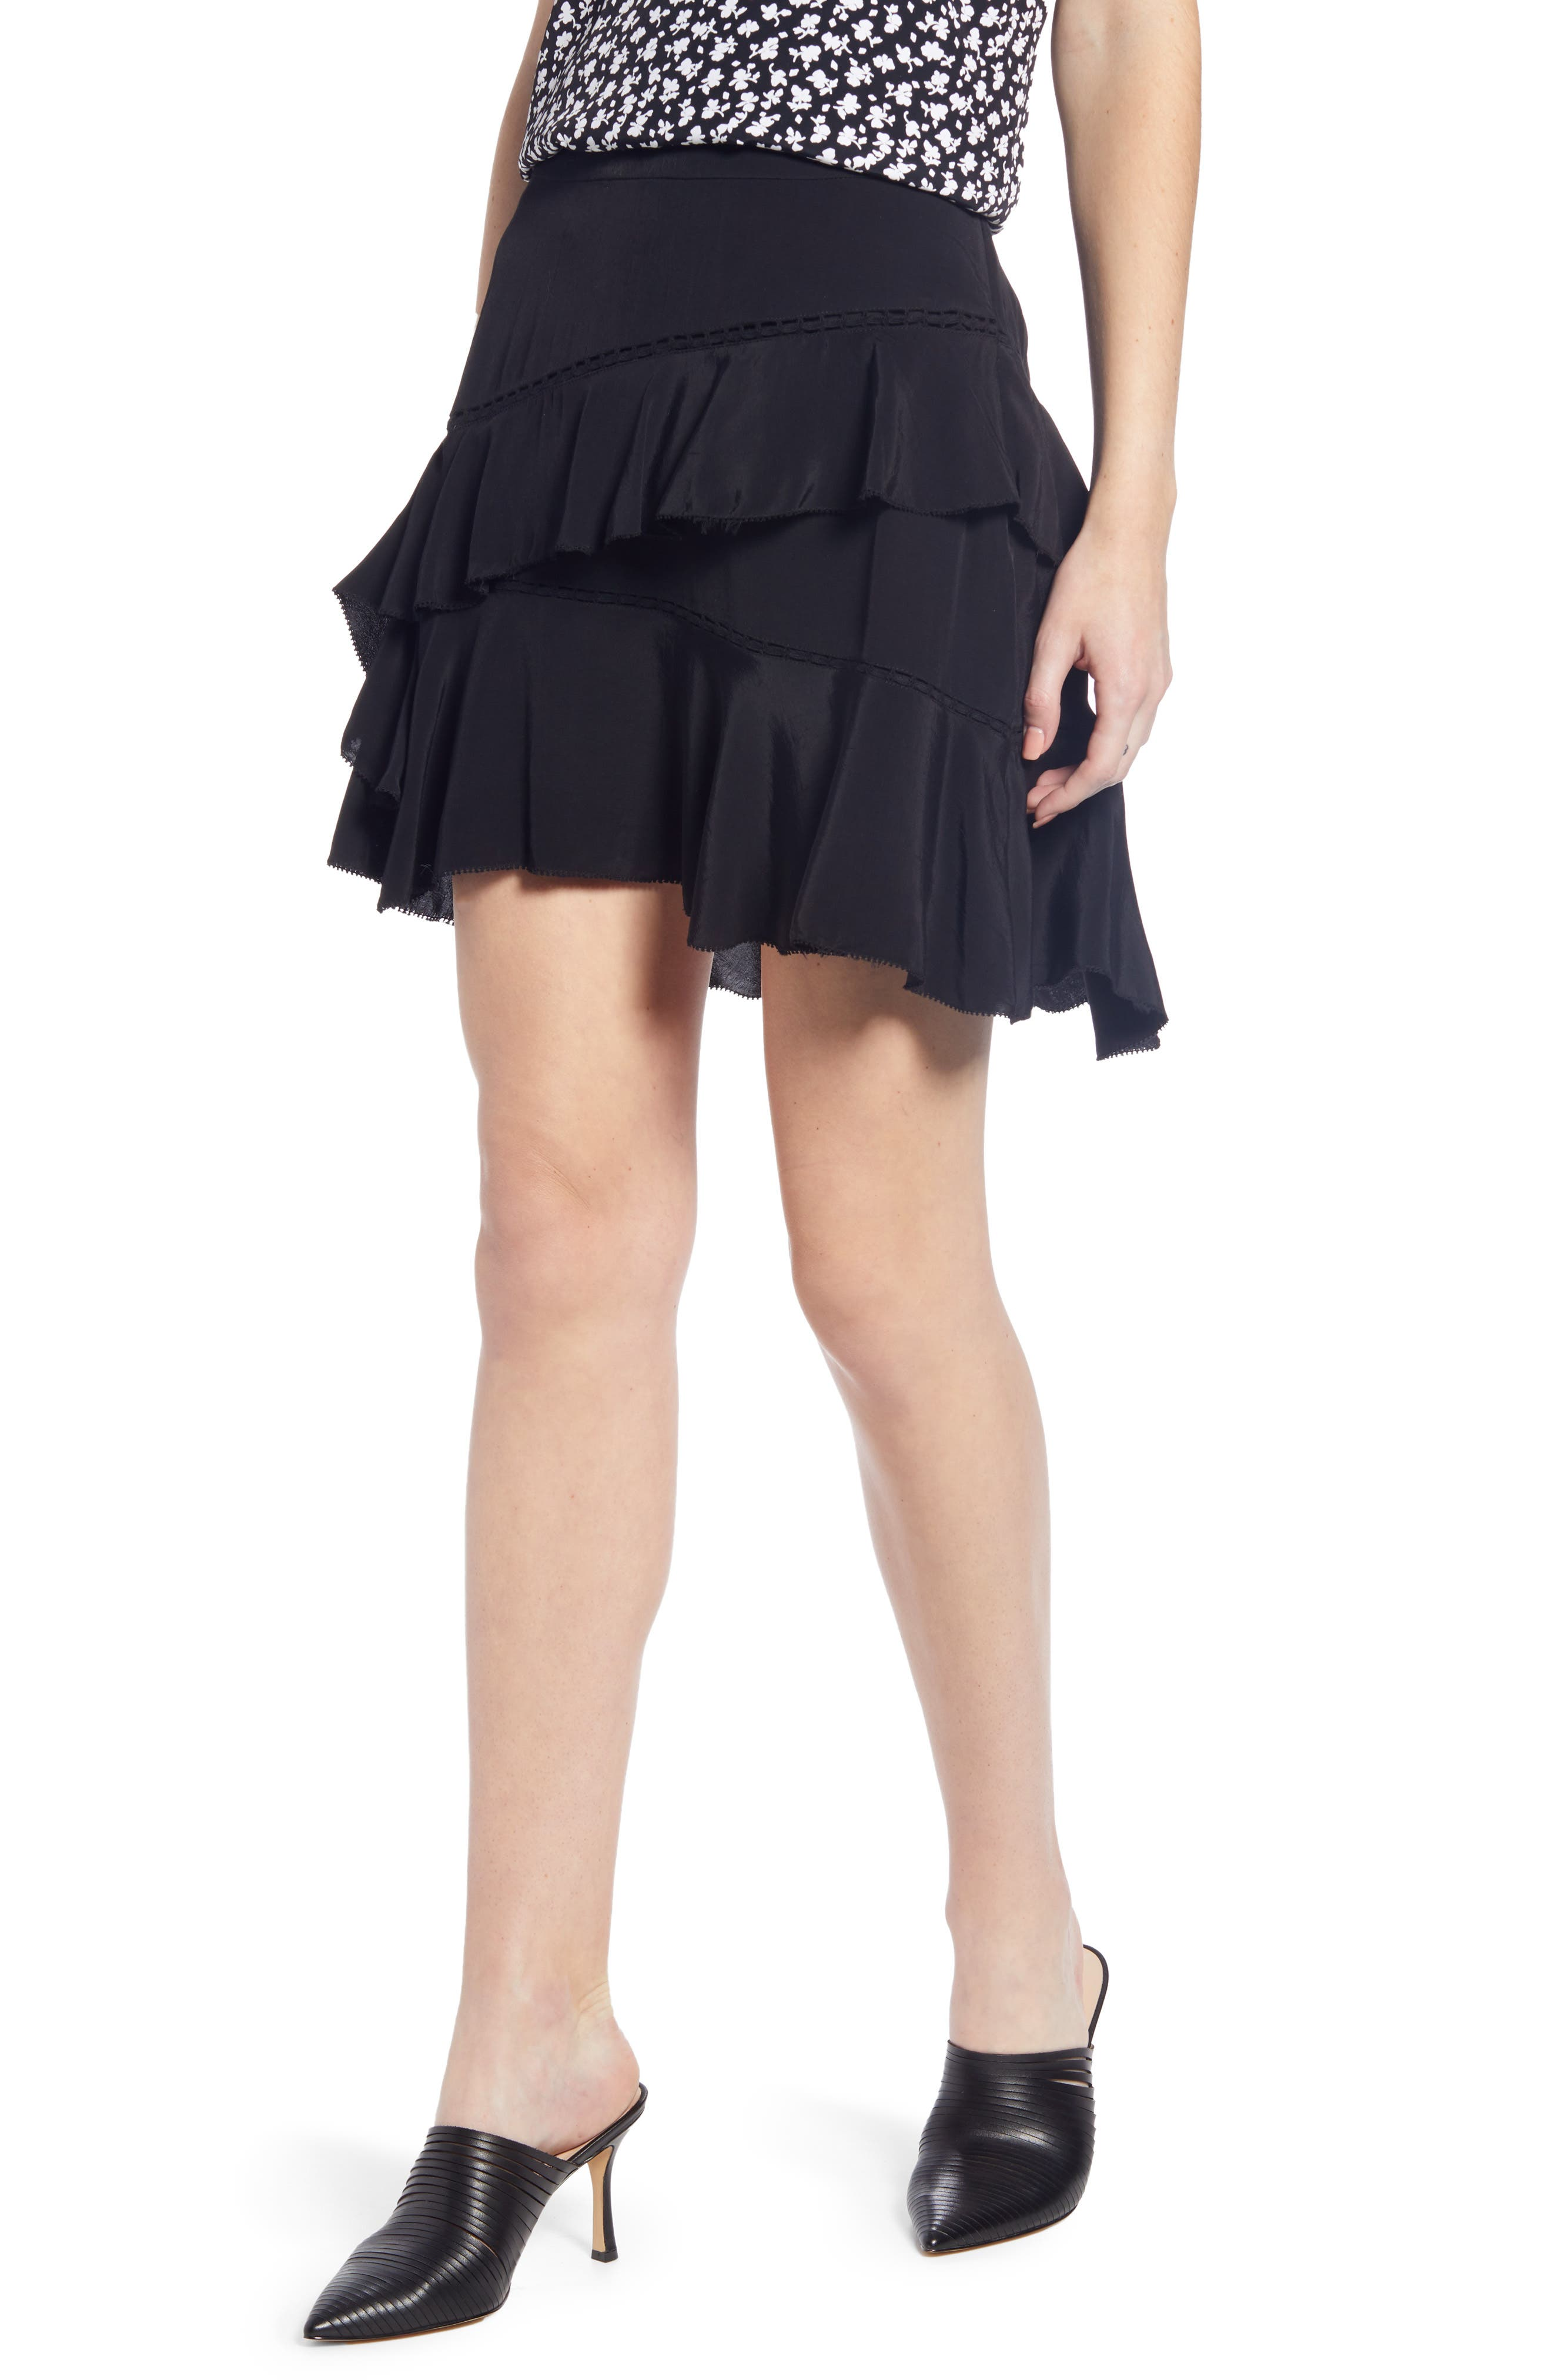 SOMETHING NAVY, Tiered Ruffle High/Low Miniskirt, Main thumbnail 1, color, BLACK